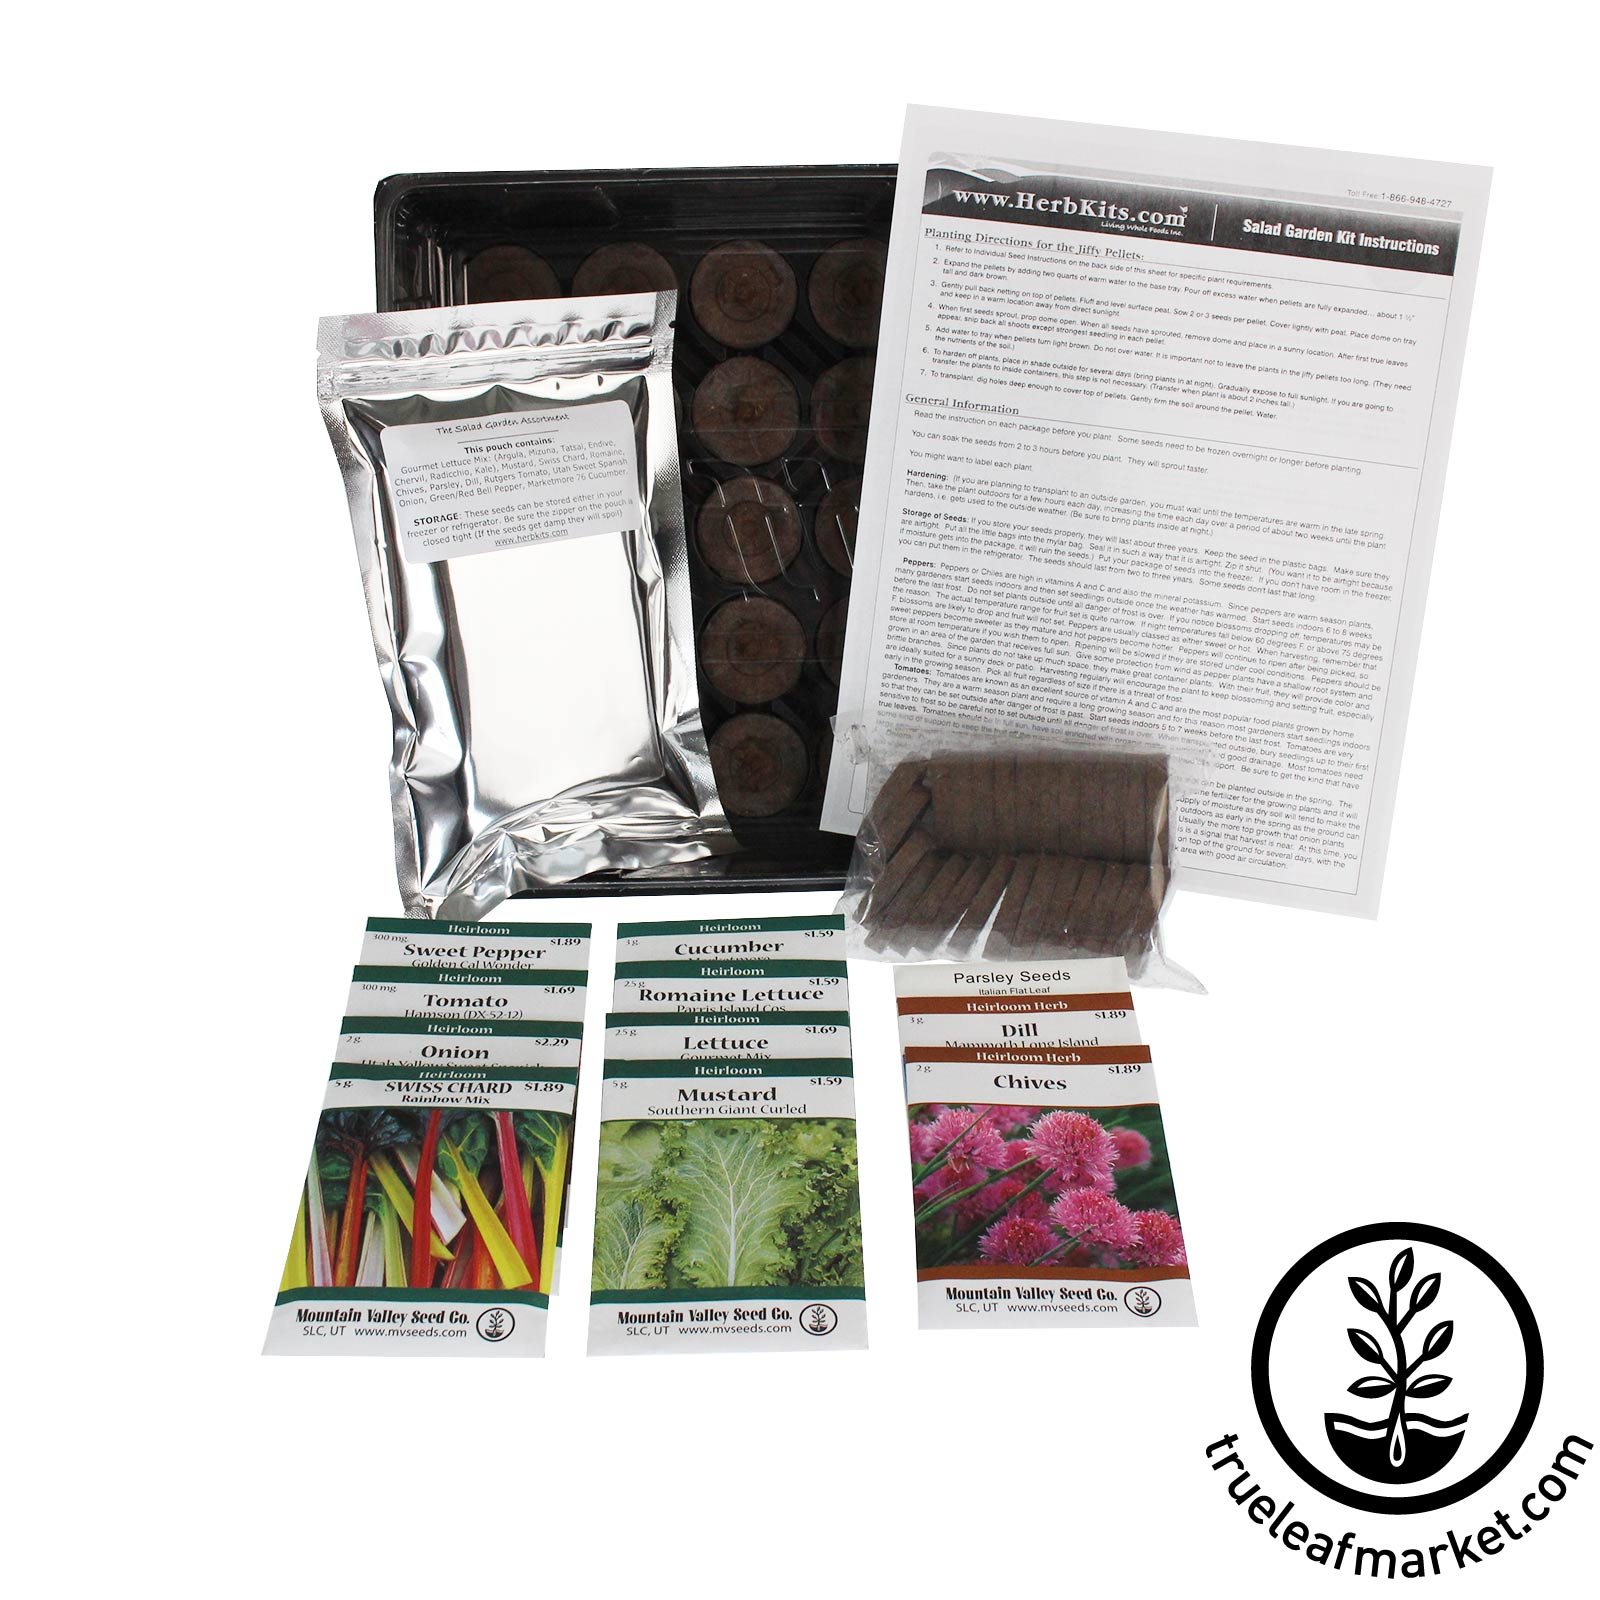 The Salad Garden Kit cooking, grow garden, indoor garden kit, exotic lettuce